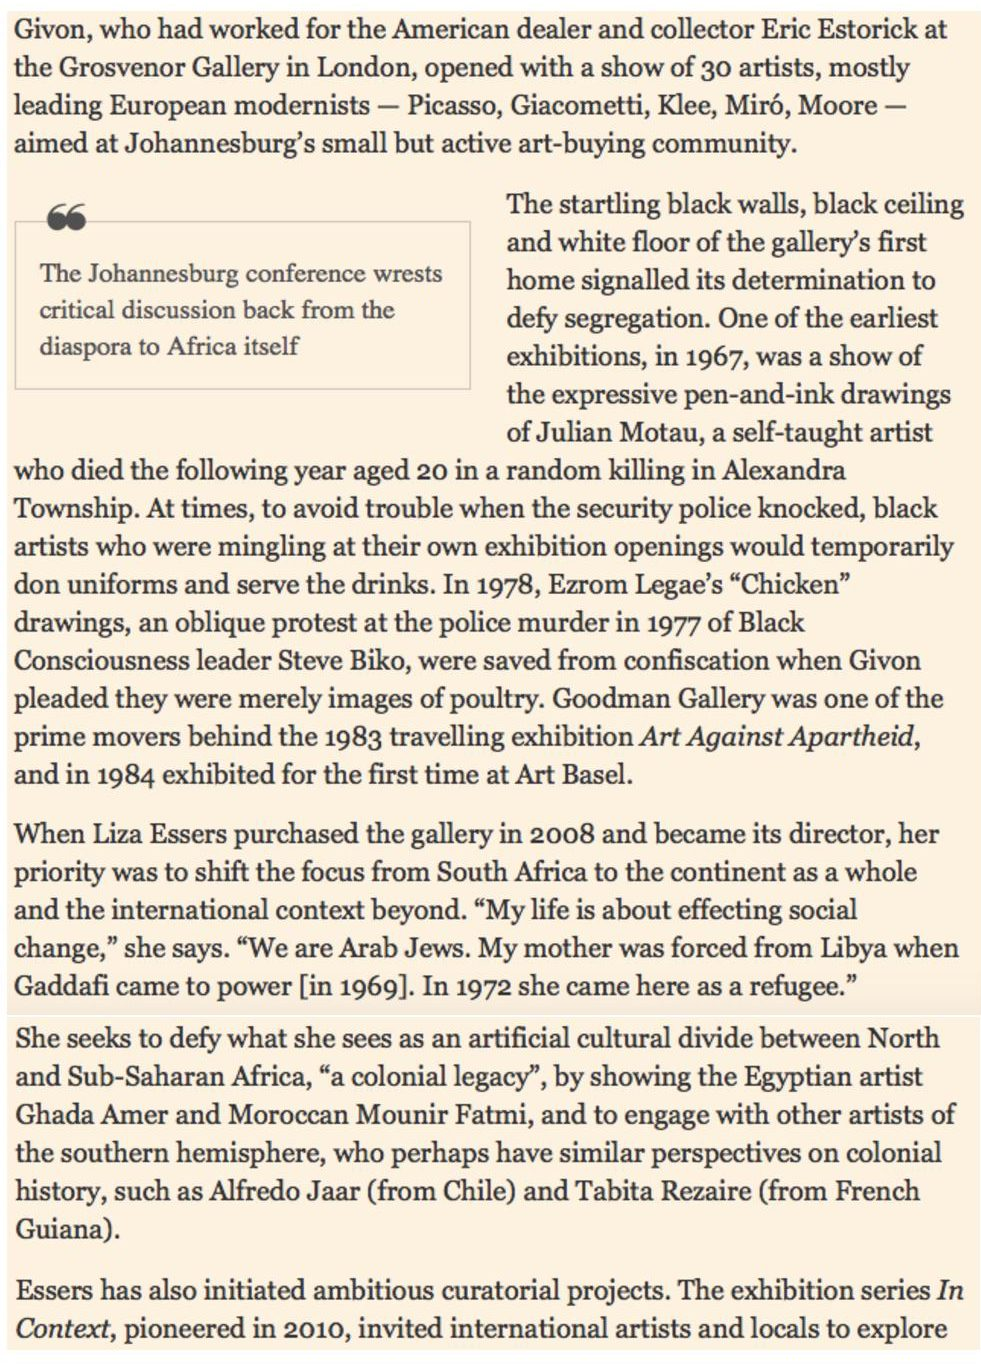 20161111_financialtimes_goodman-page-004